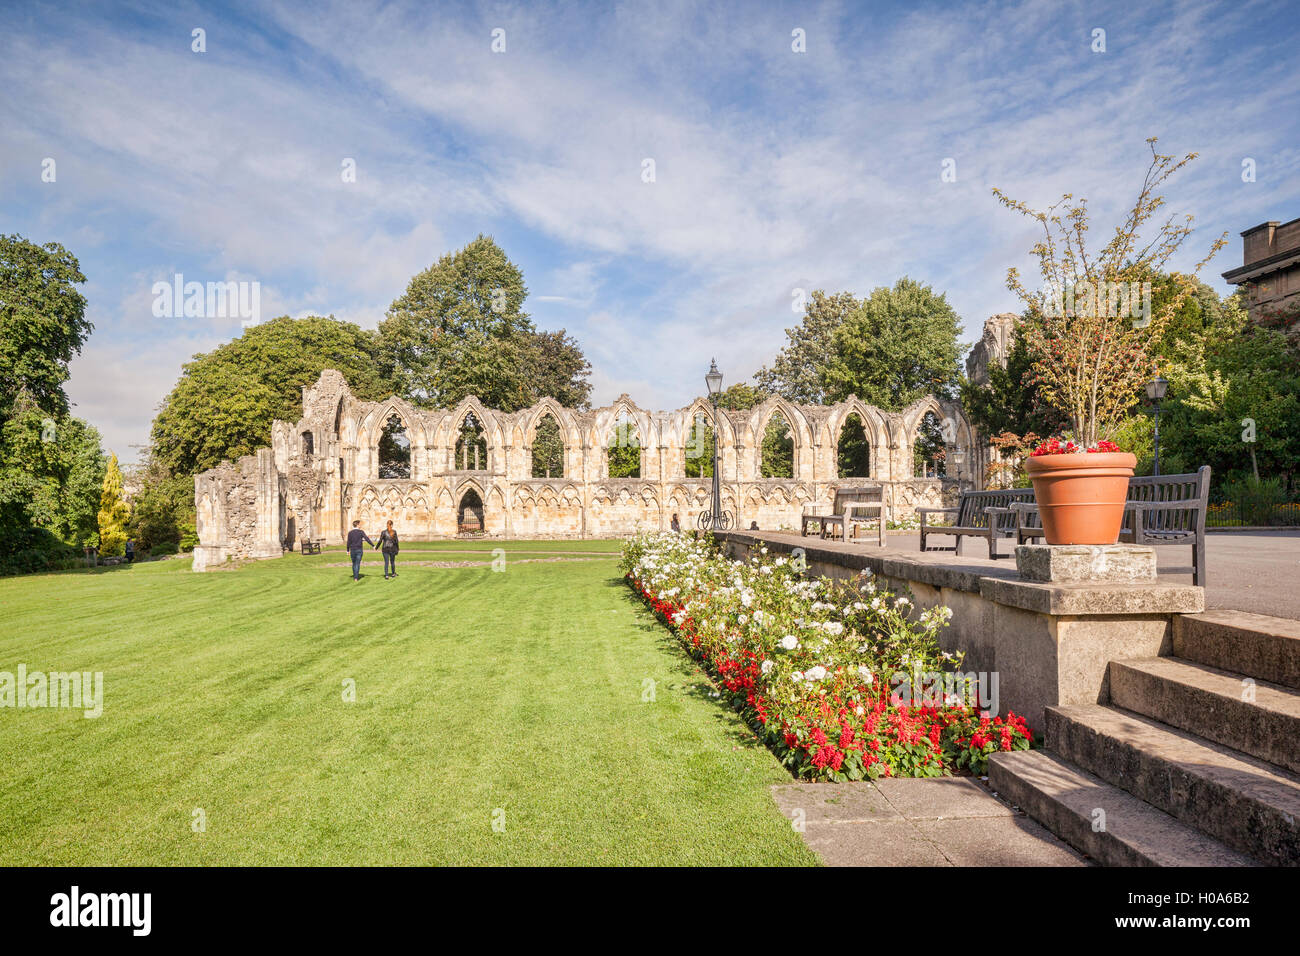 St Mary's Abbey, York, North Yorkshire, Inglaterra, Reino Unido. Imagen De Stock